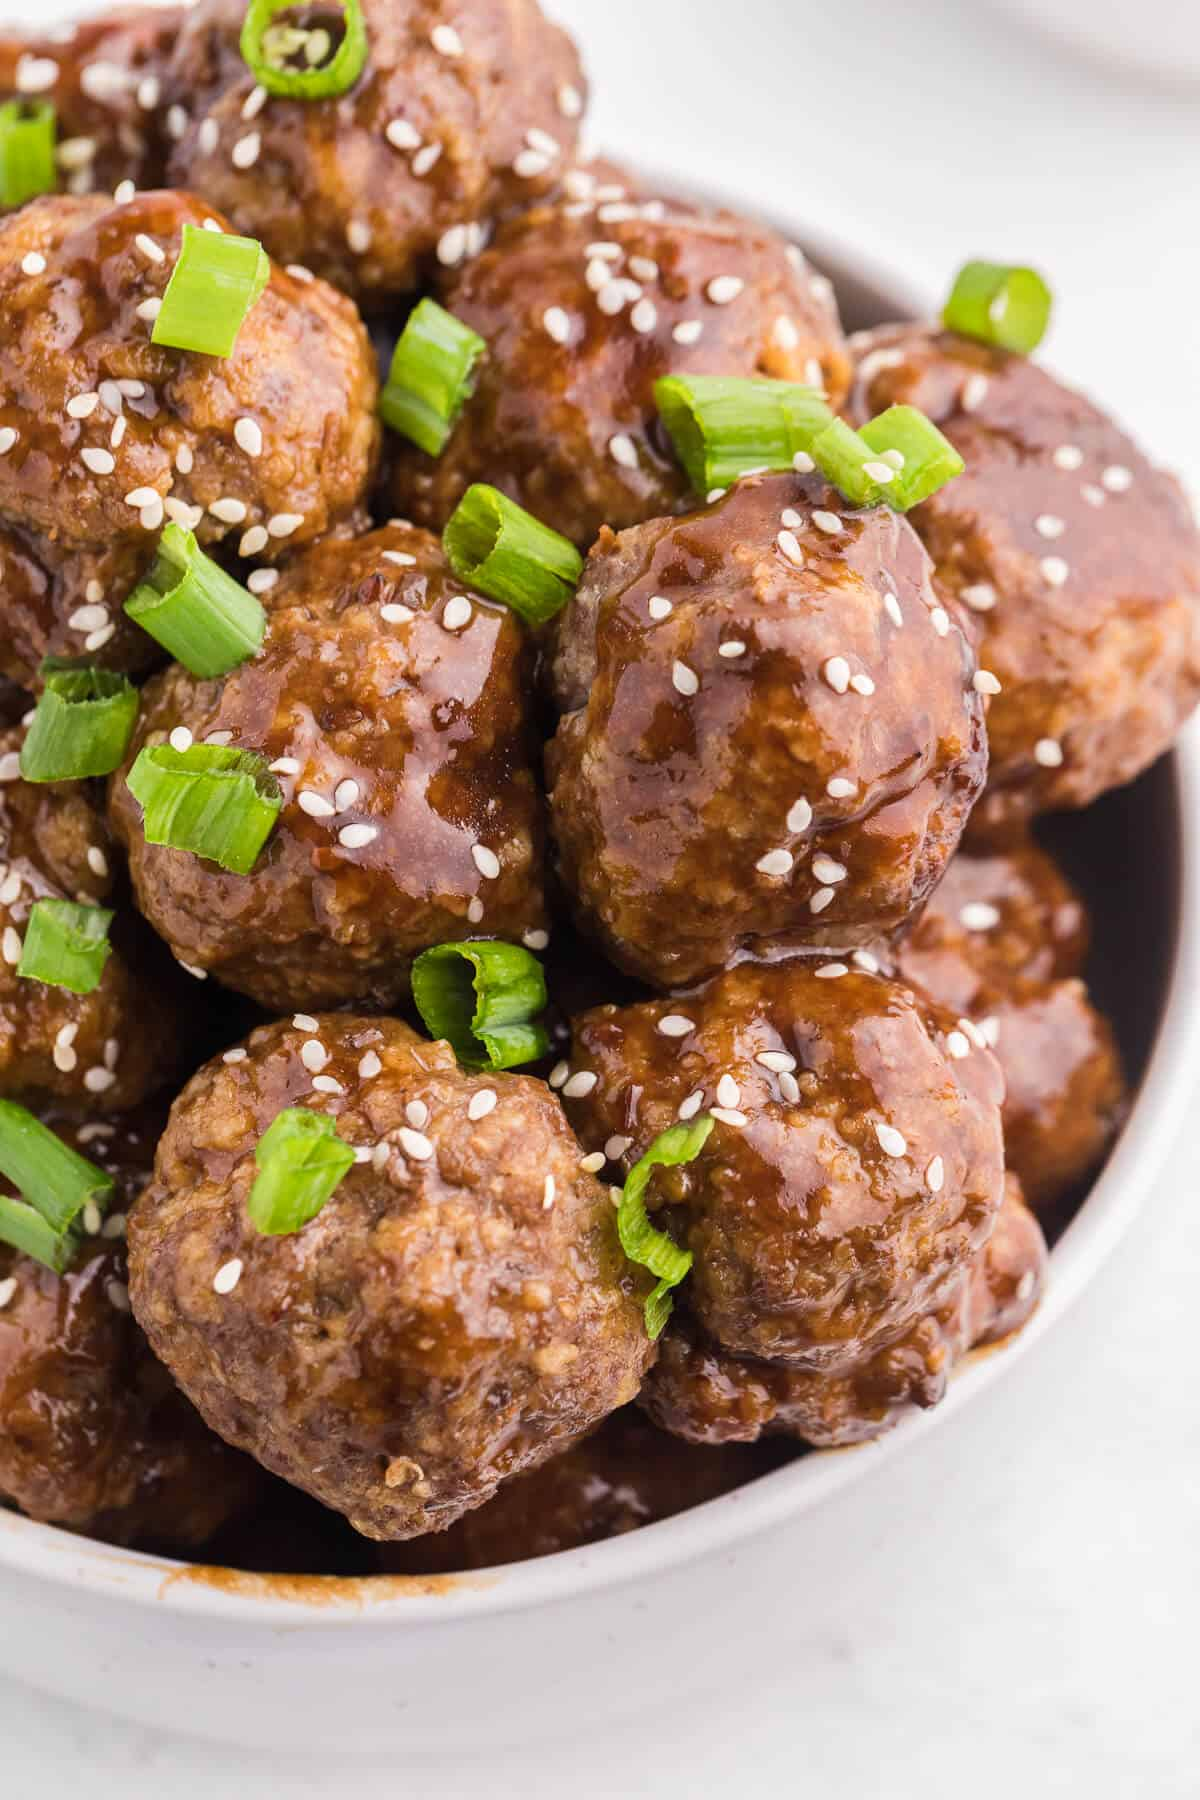 Ginger Meatballs - Add this Asian meatball recipe to your next party menu! Homemade beef meatballs with zesty ginger are smothered in sweet and tangy stir fry sauce. Yum!